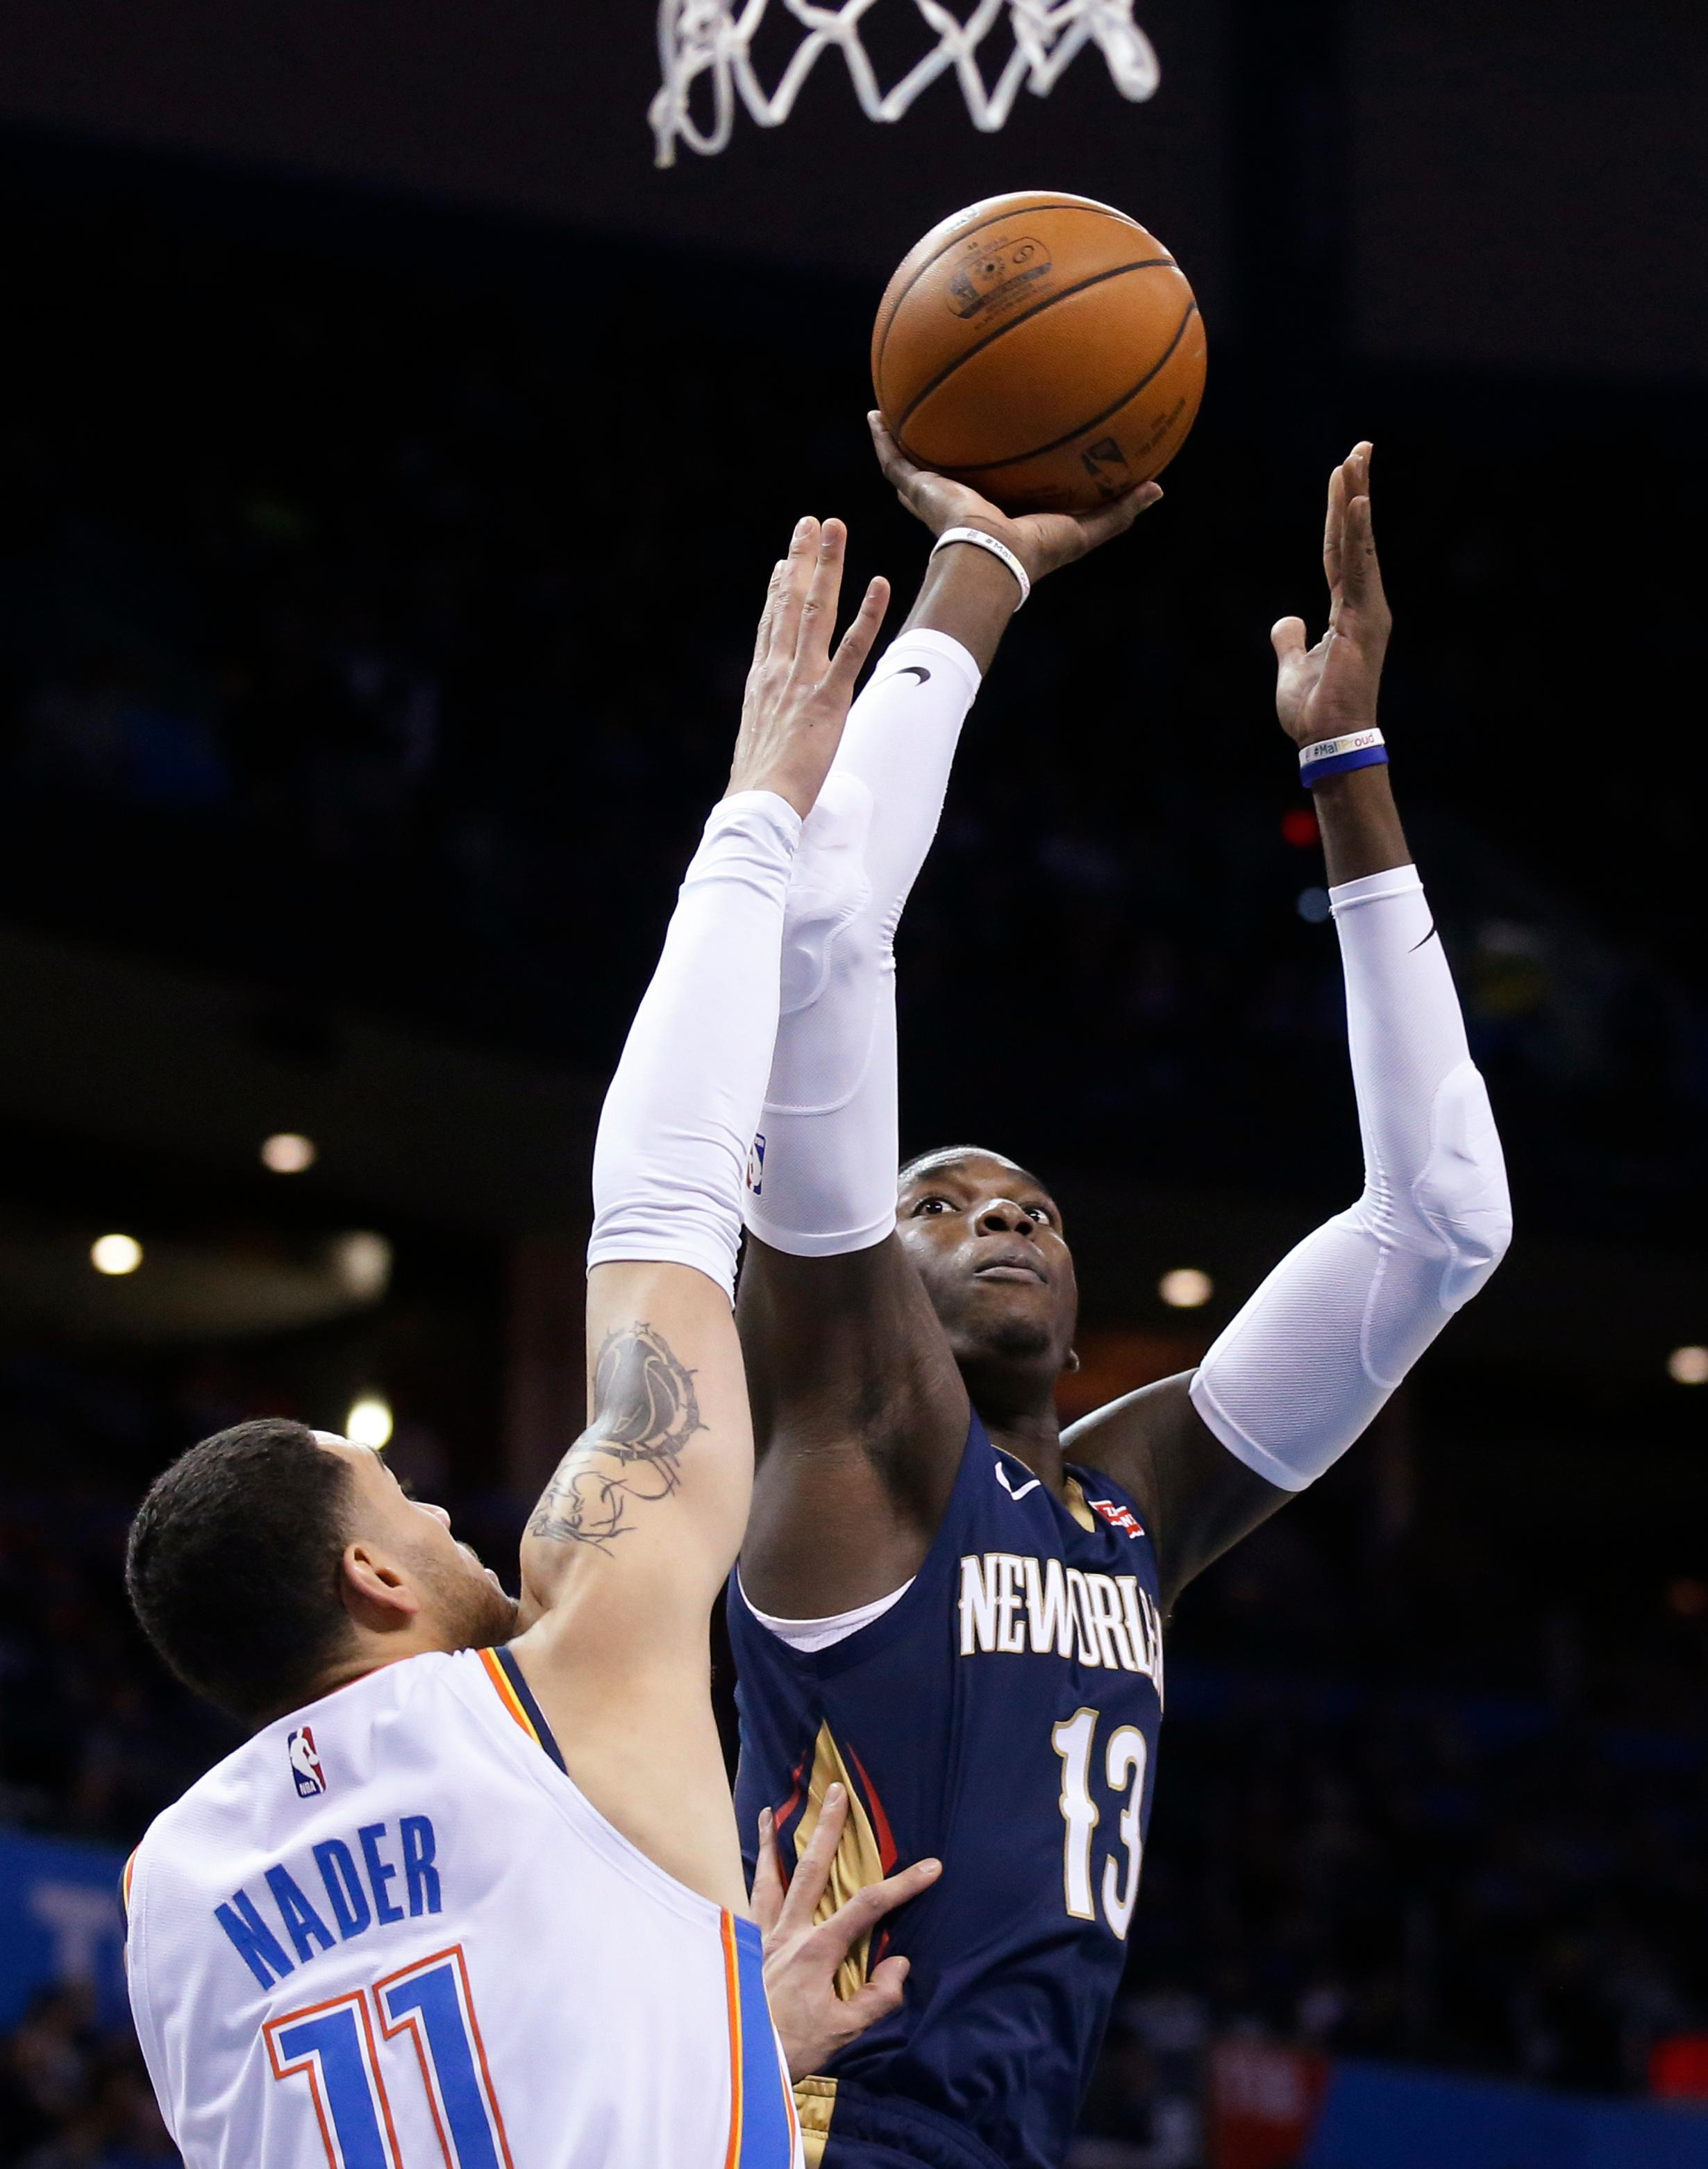 New Orleans Pelicans forward Cheick Diallo (13) shoots over Oklahoma City Thunder forward Abdel Nader (11) during the first half of an NBA basketball game in Oklahoma City, Thursday, Jan. 24, 2019. (AP Photo/Sue Ogrocki)